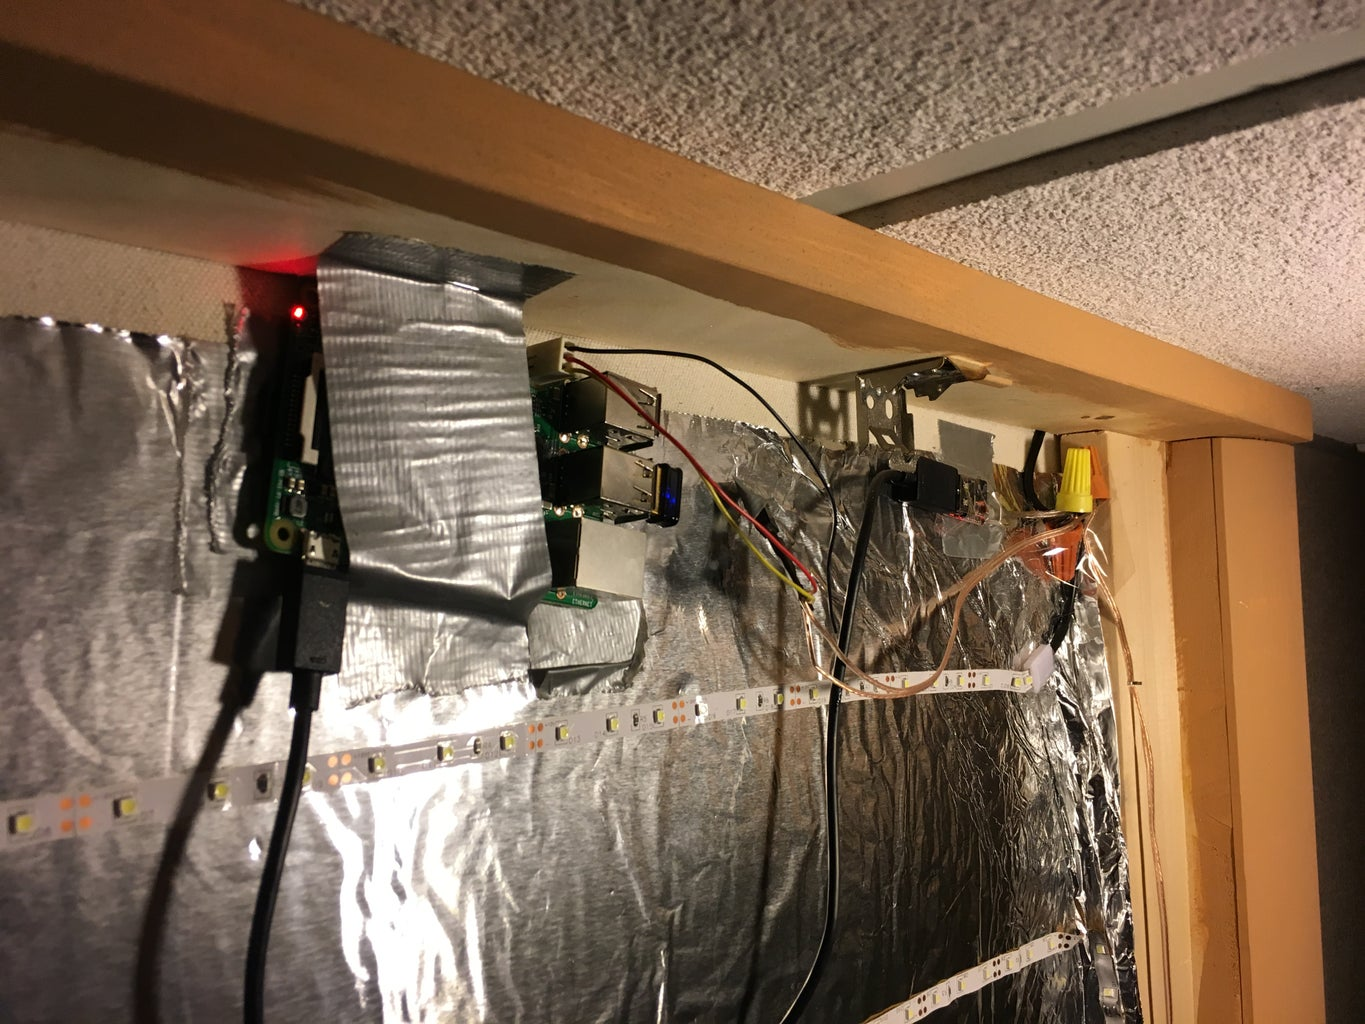 Attach and Wire the LED Strip Lights, Raspberry Pi and MOSFET